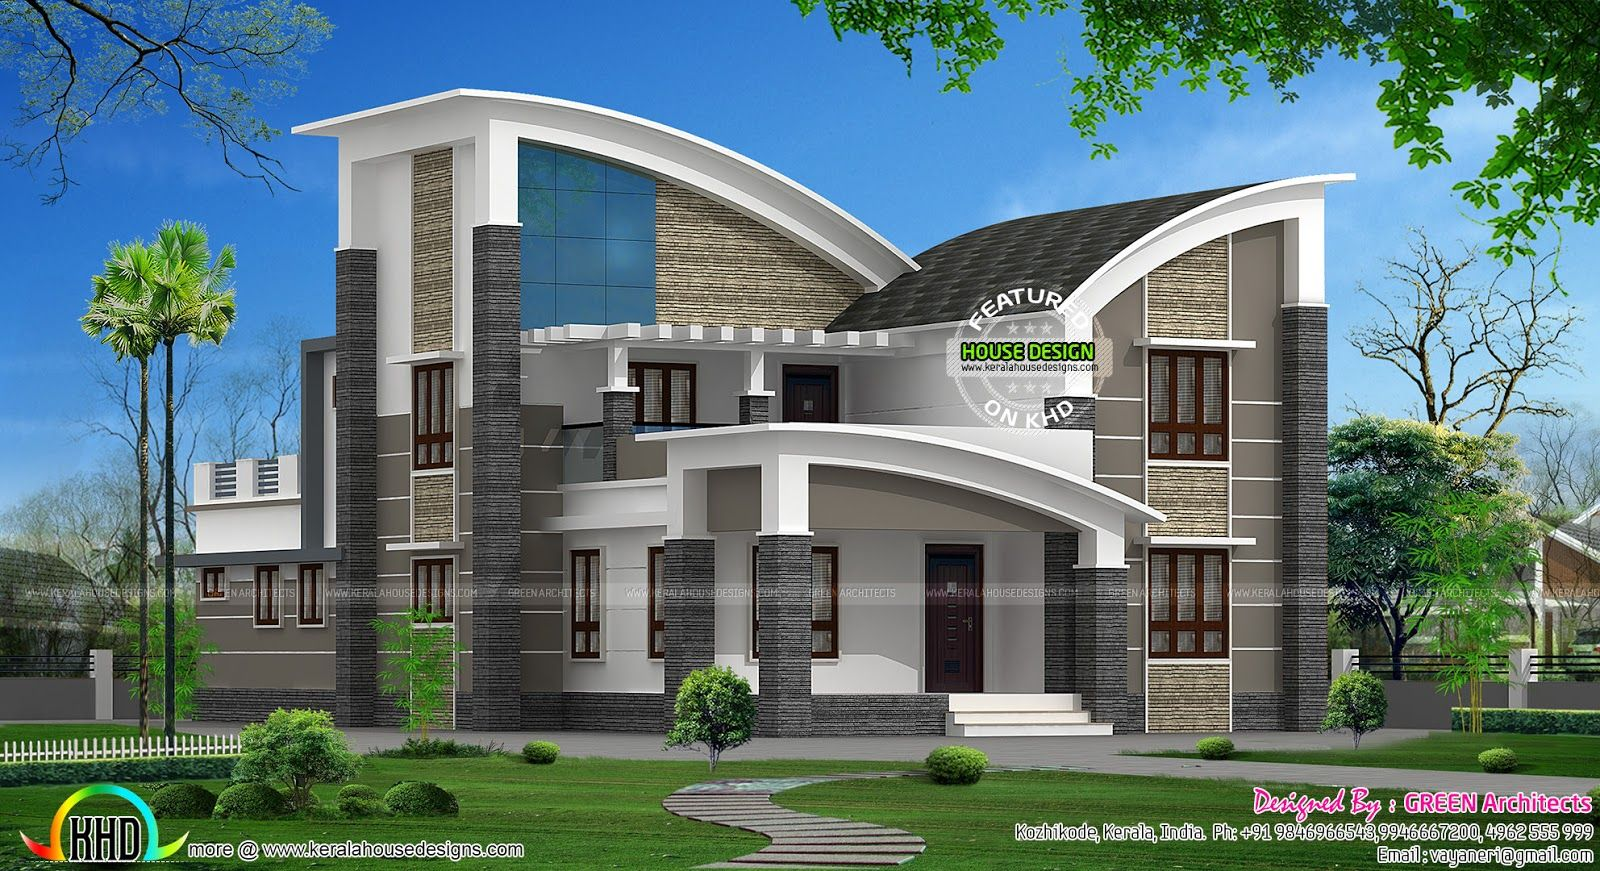 Modern style curved roof villa home inspiration for Building type house design